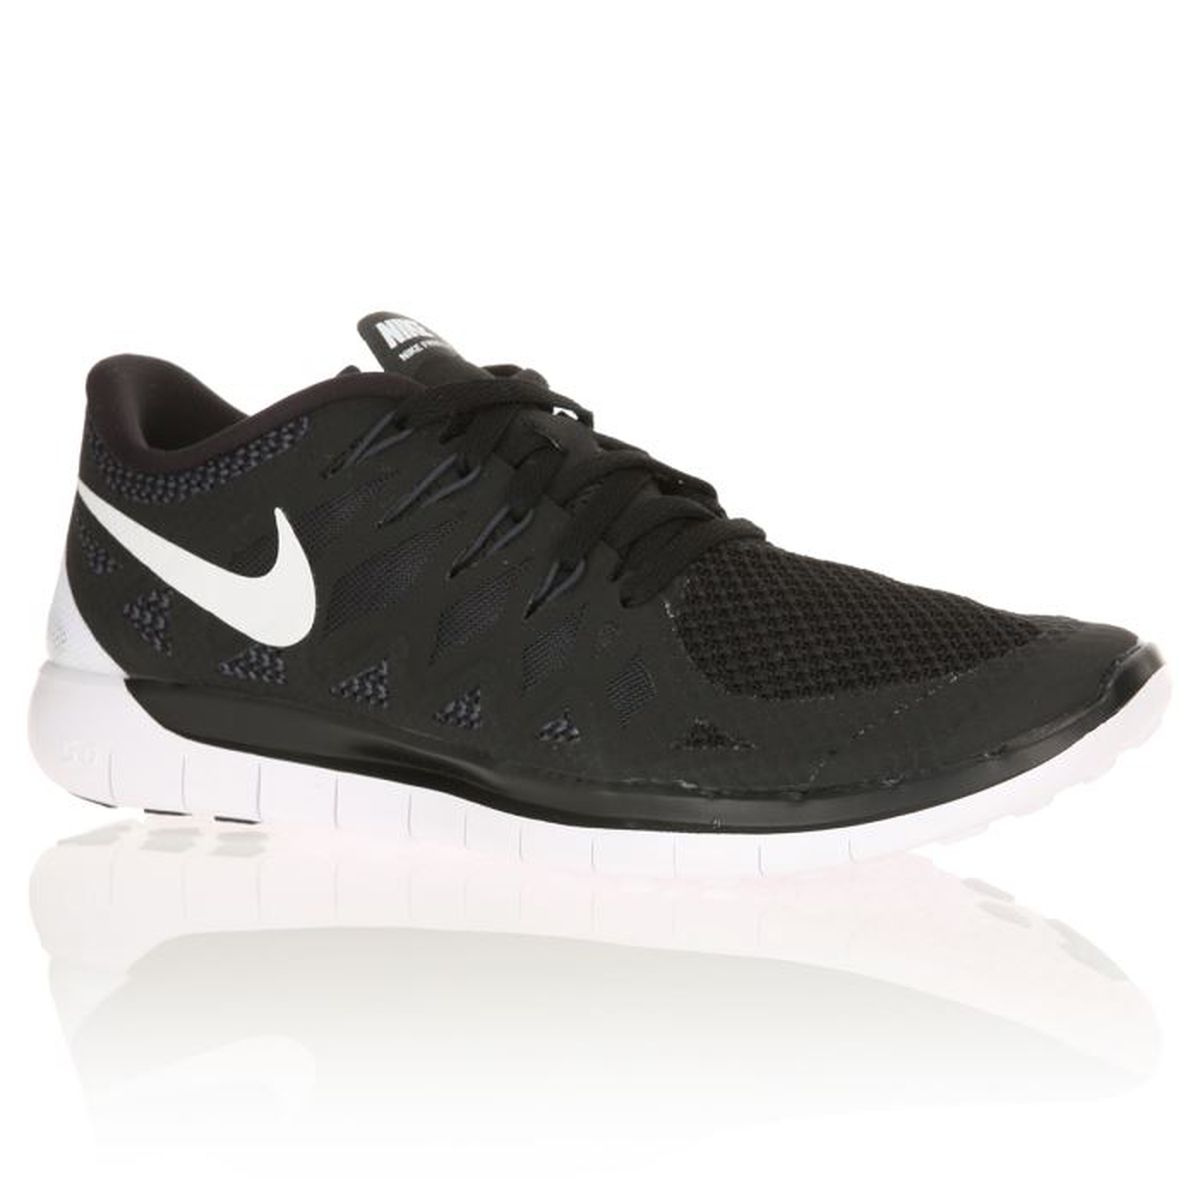 nike chaussures de running free run 5 0 femme prix pas. Black Bedroom Furniture Sets. Home Design Ideas